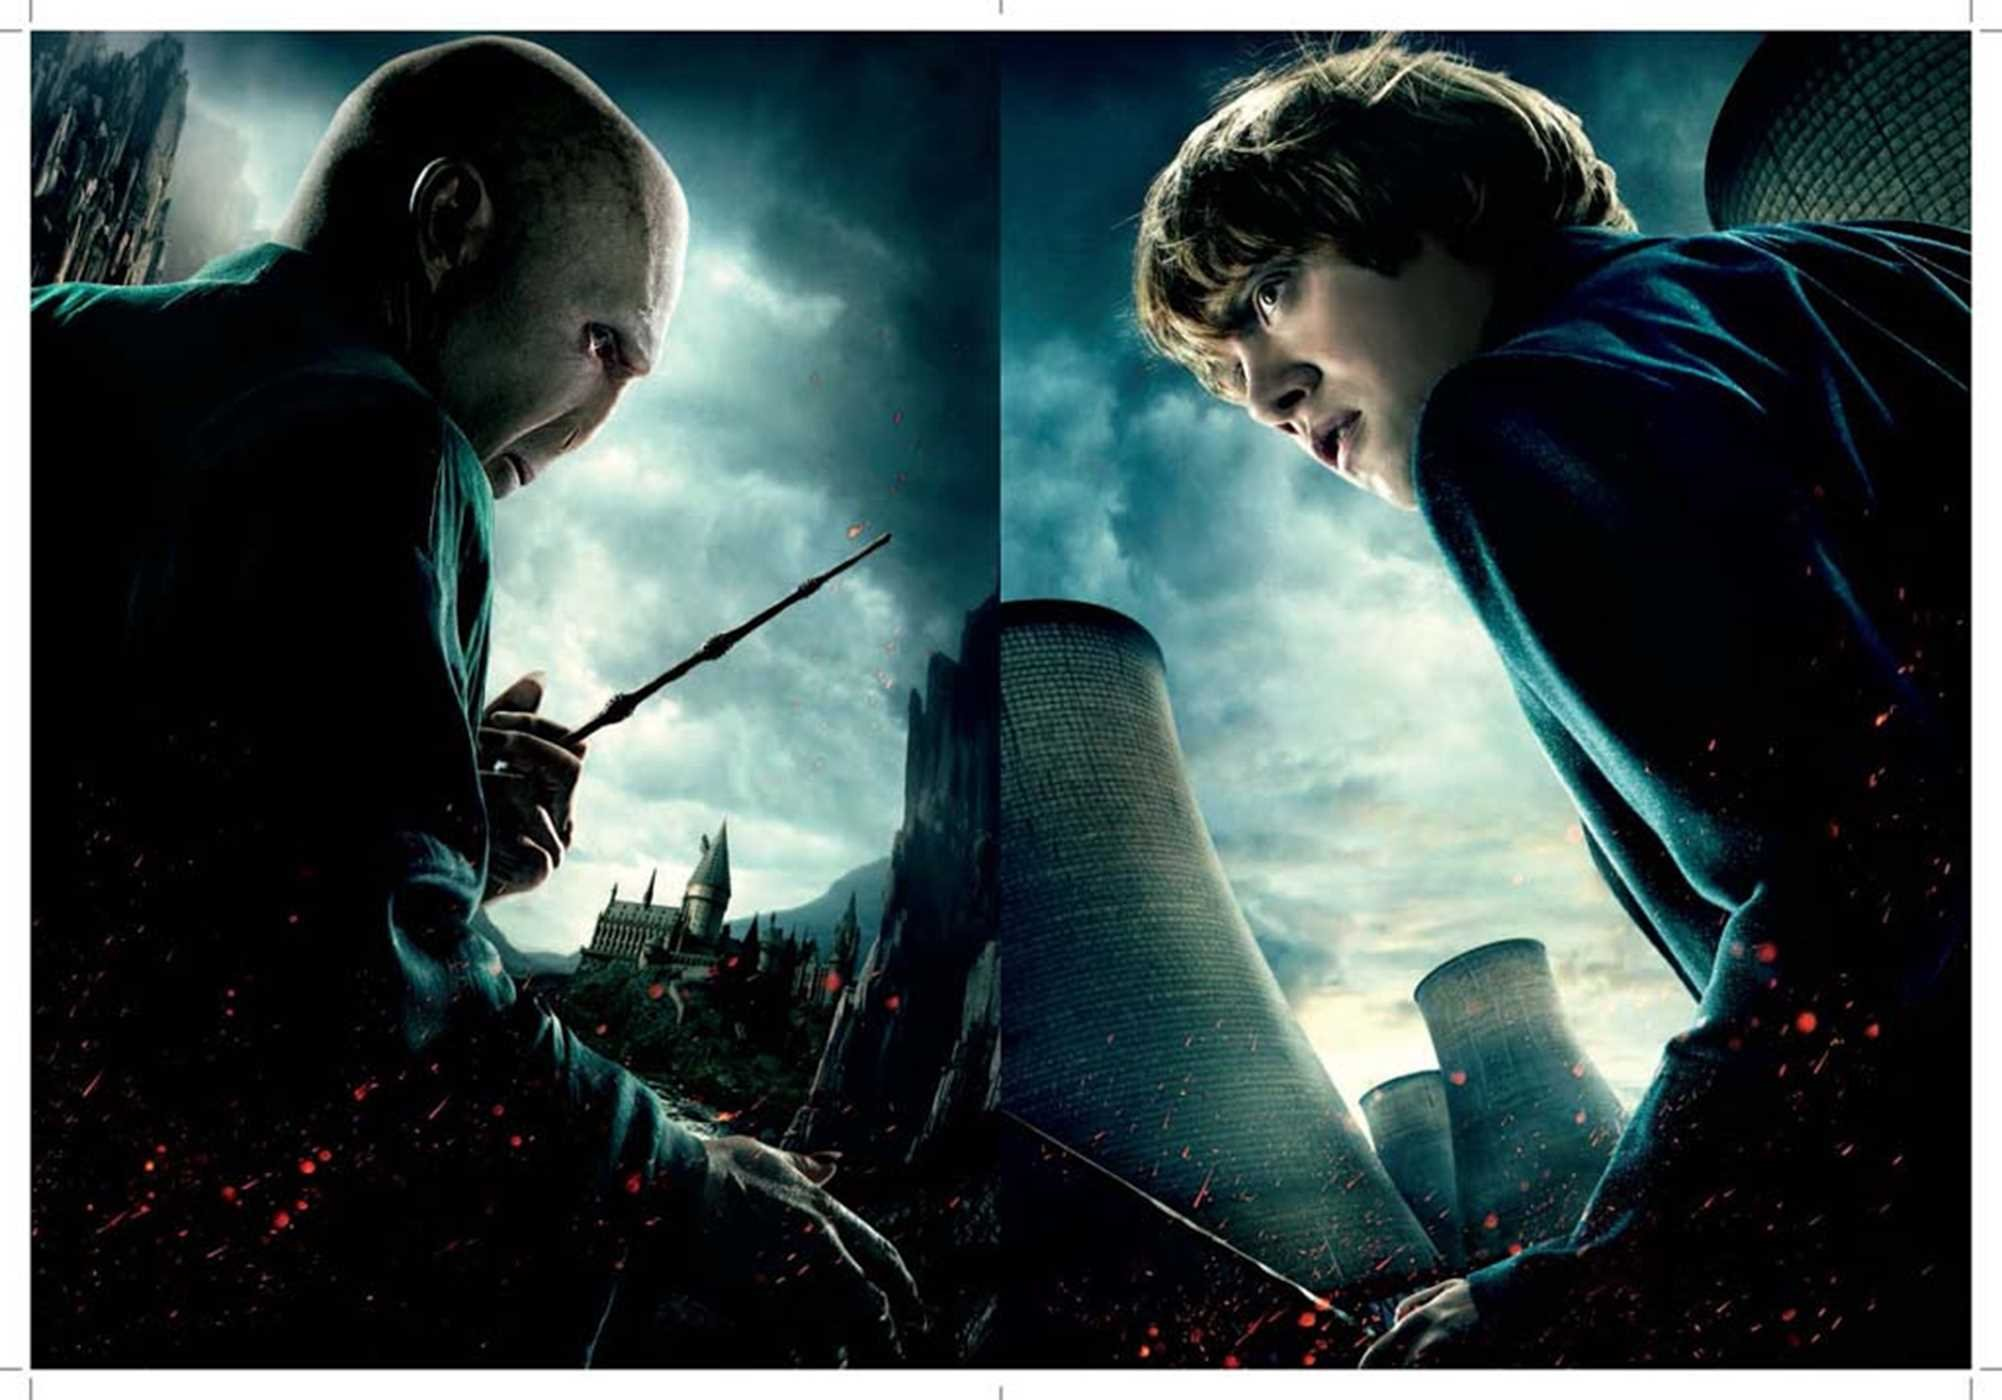 Buy Harry Potter Poster Collection: The Definitive Movie Posters (Insights  Poster Collections) Book Online at Low Prices in India | Harry Potter Poster  ...